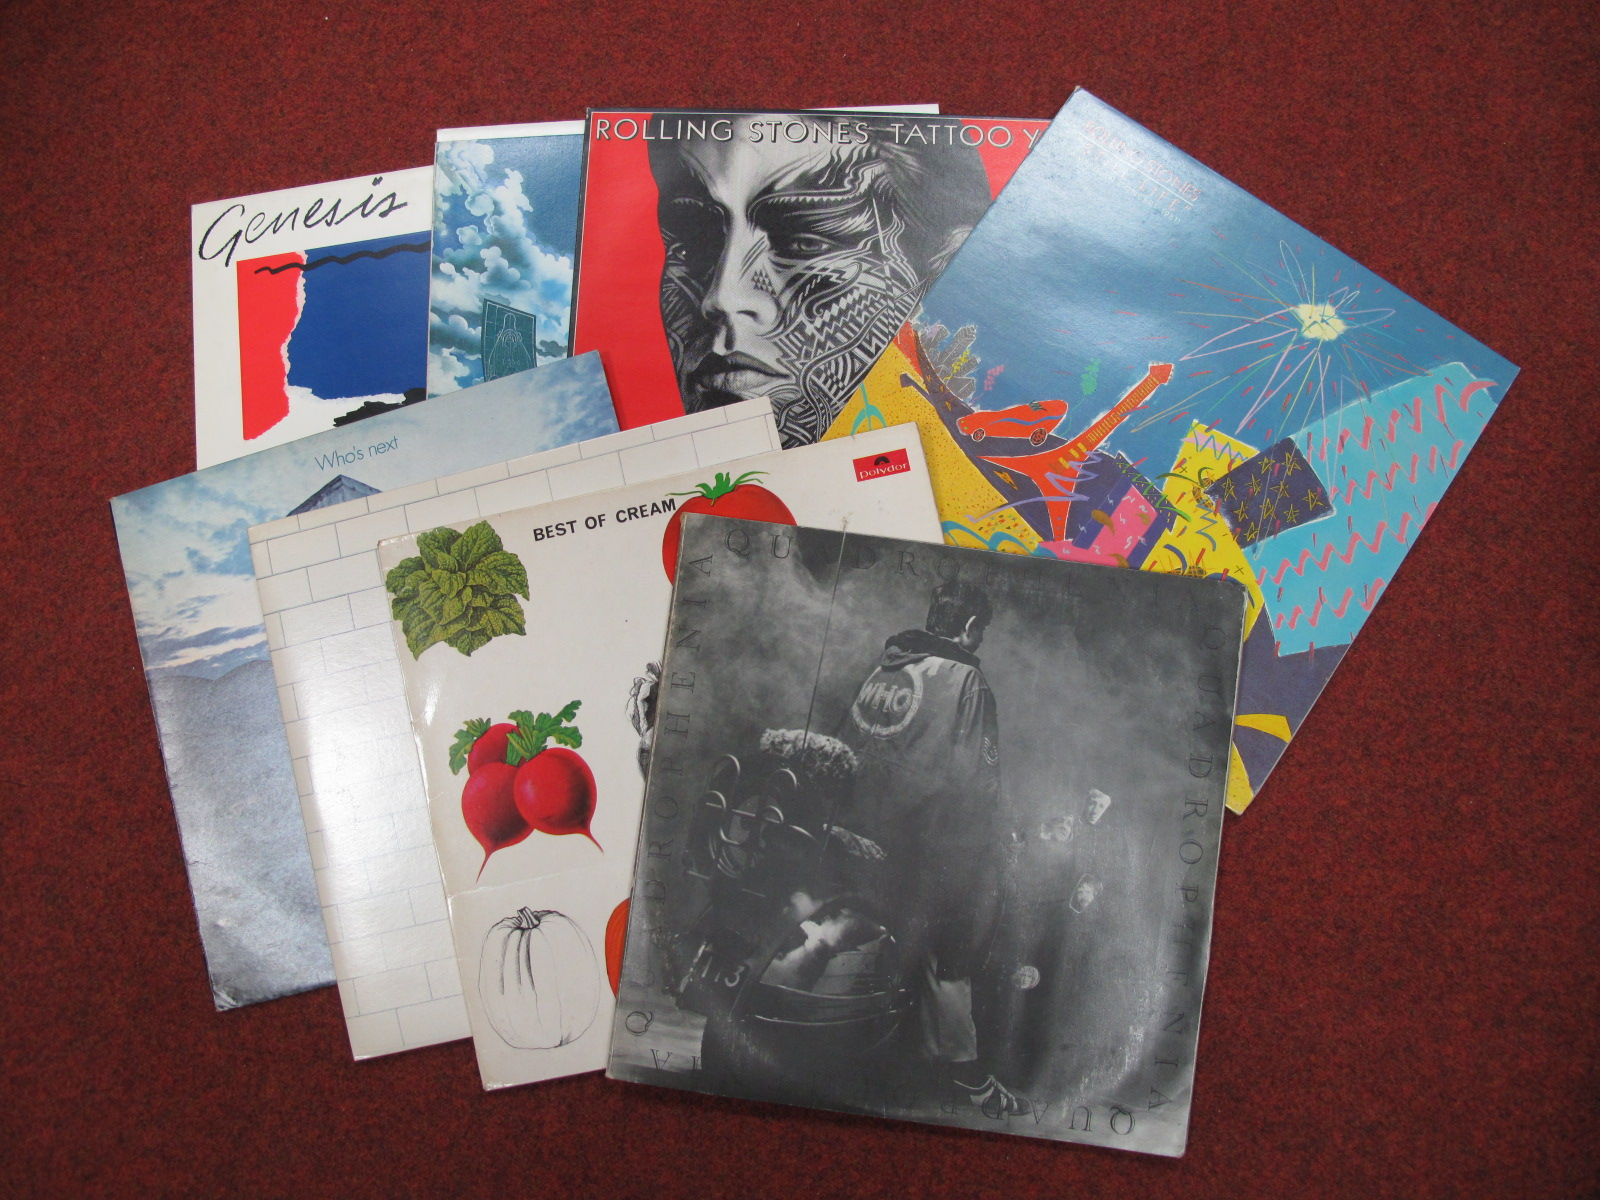 Lot 749 - Pink Floyd 'The Wall' Two LP, The Who's 'Quadrophenia', and 'Who's Next', Cream 'Best Of', Rolling